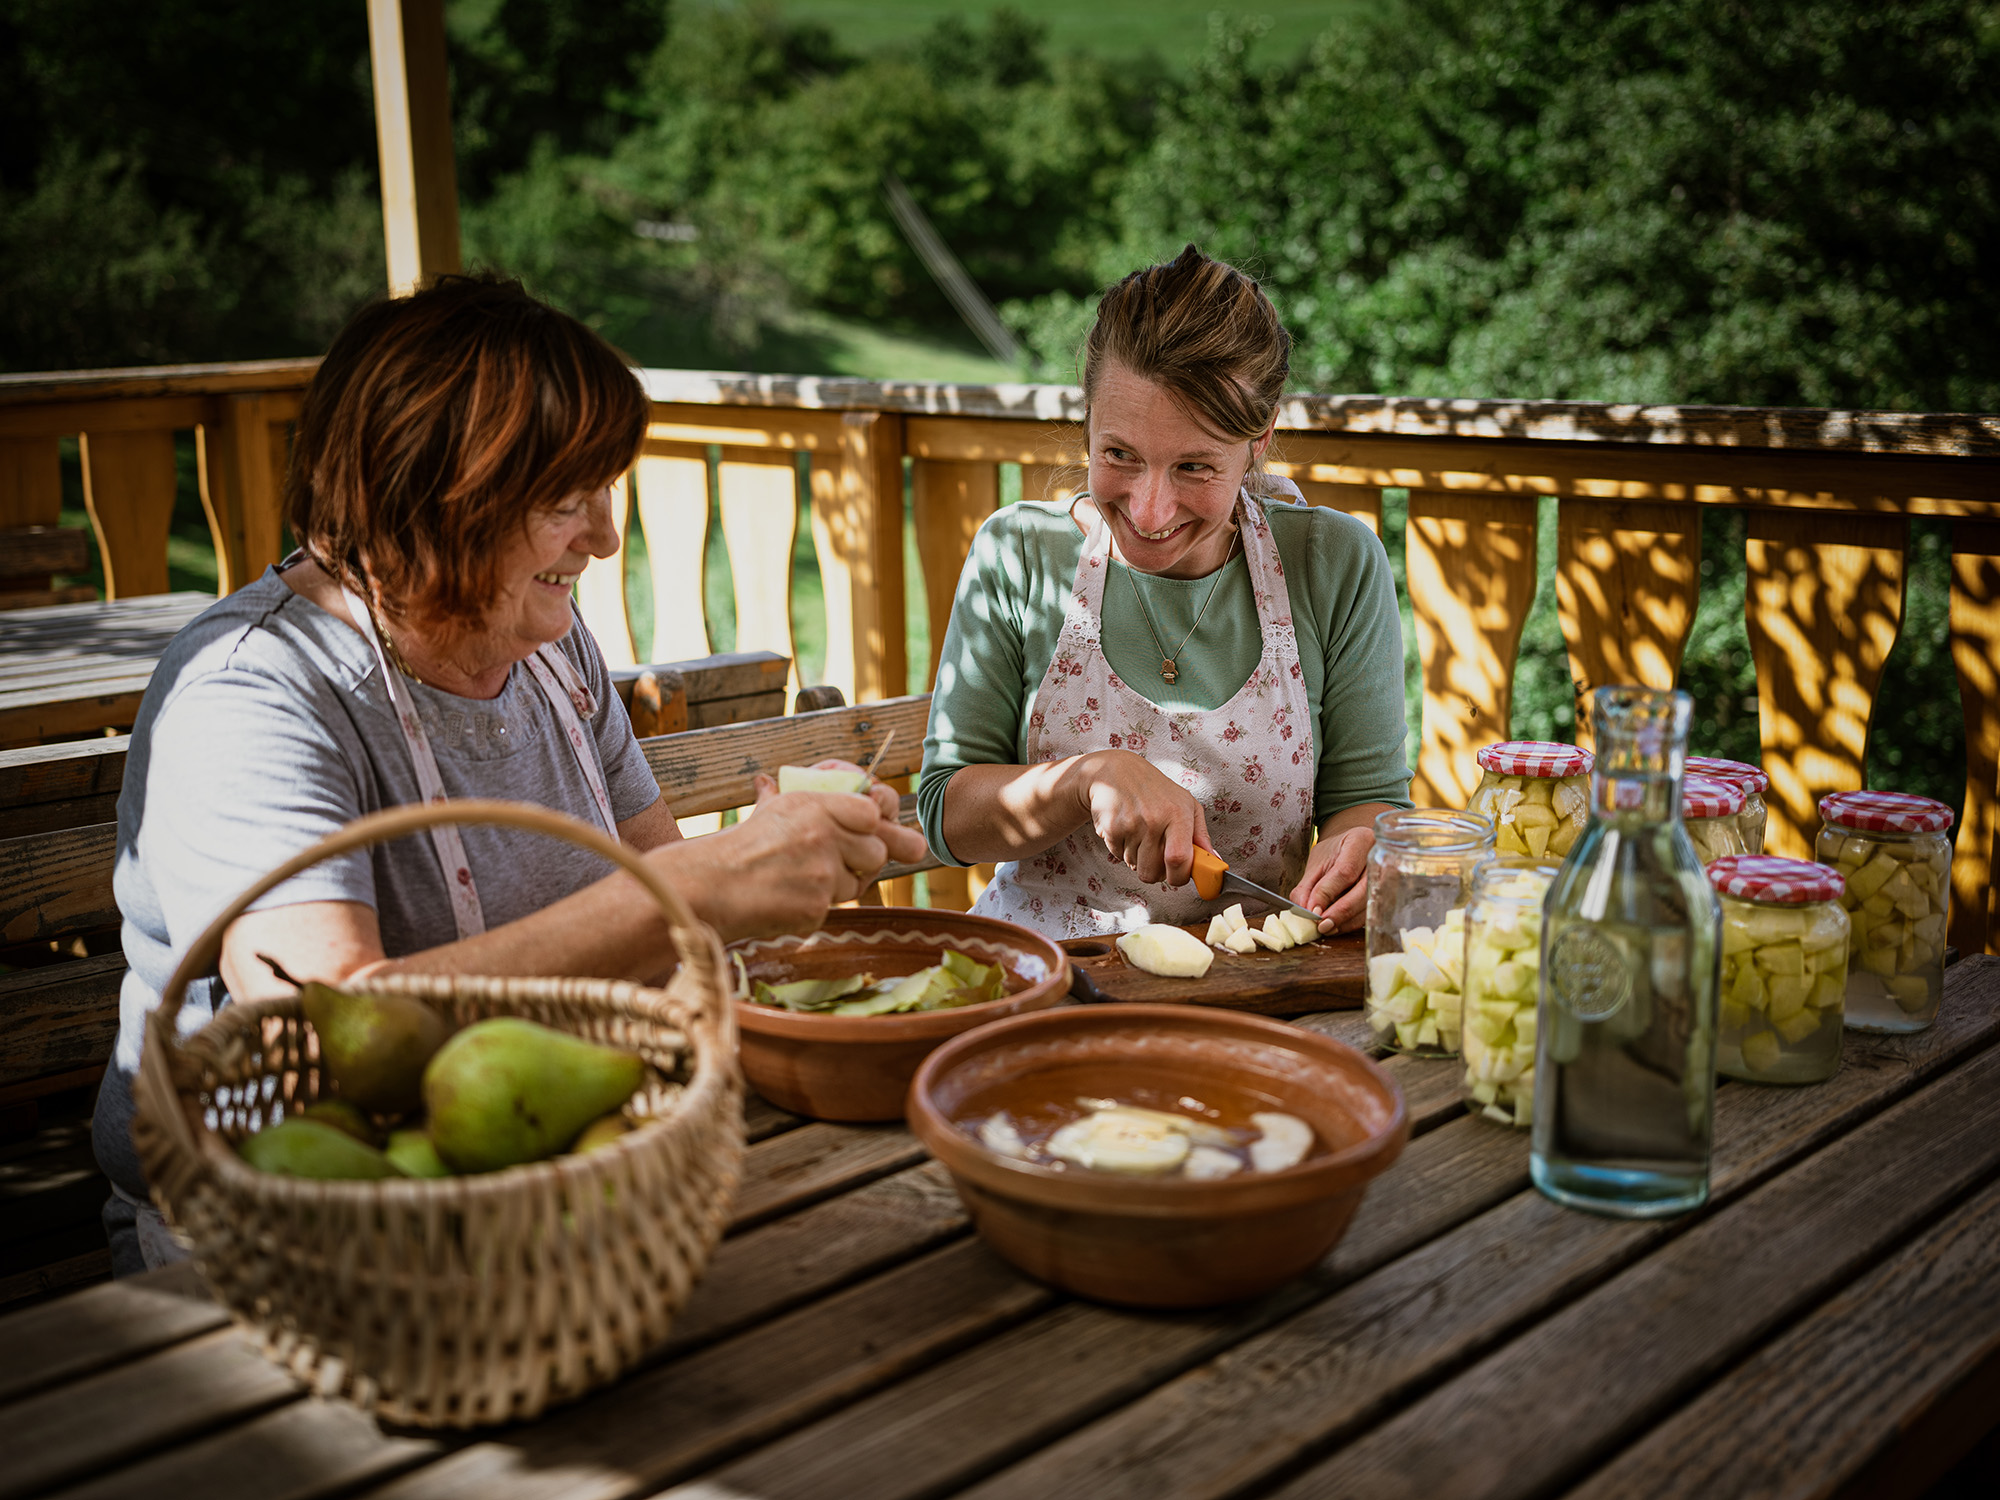 Urška and Vilma preparing food